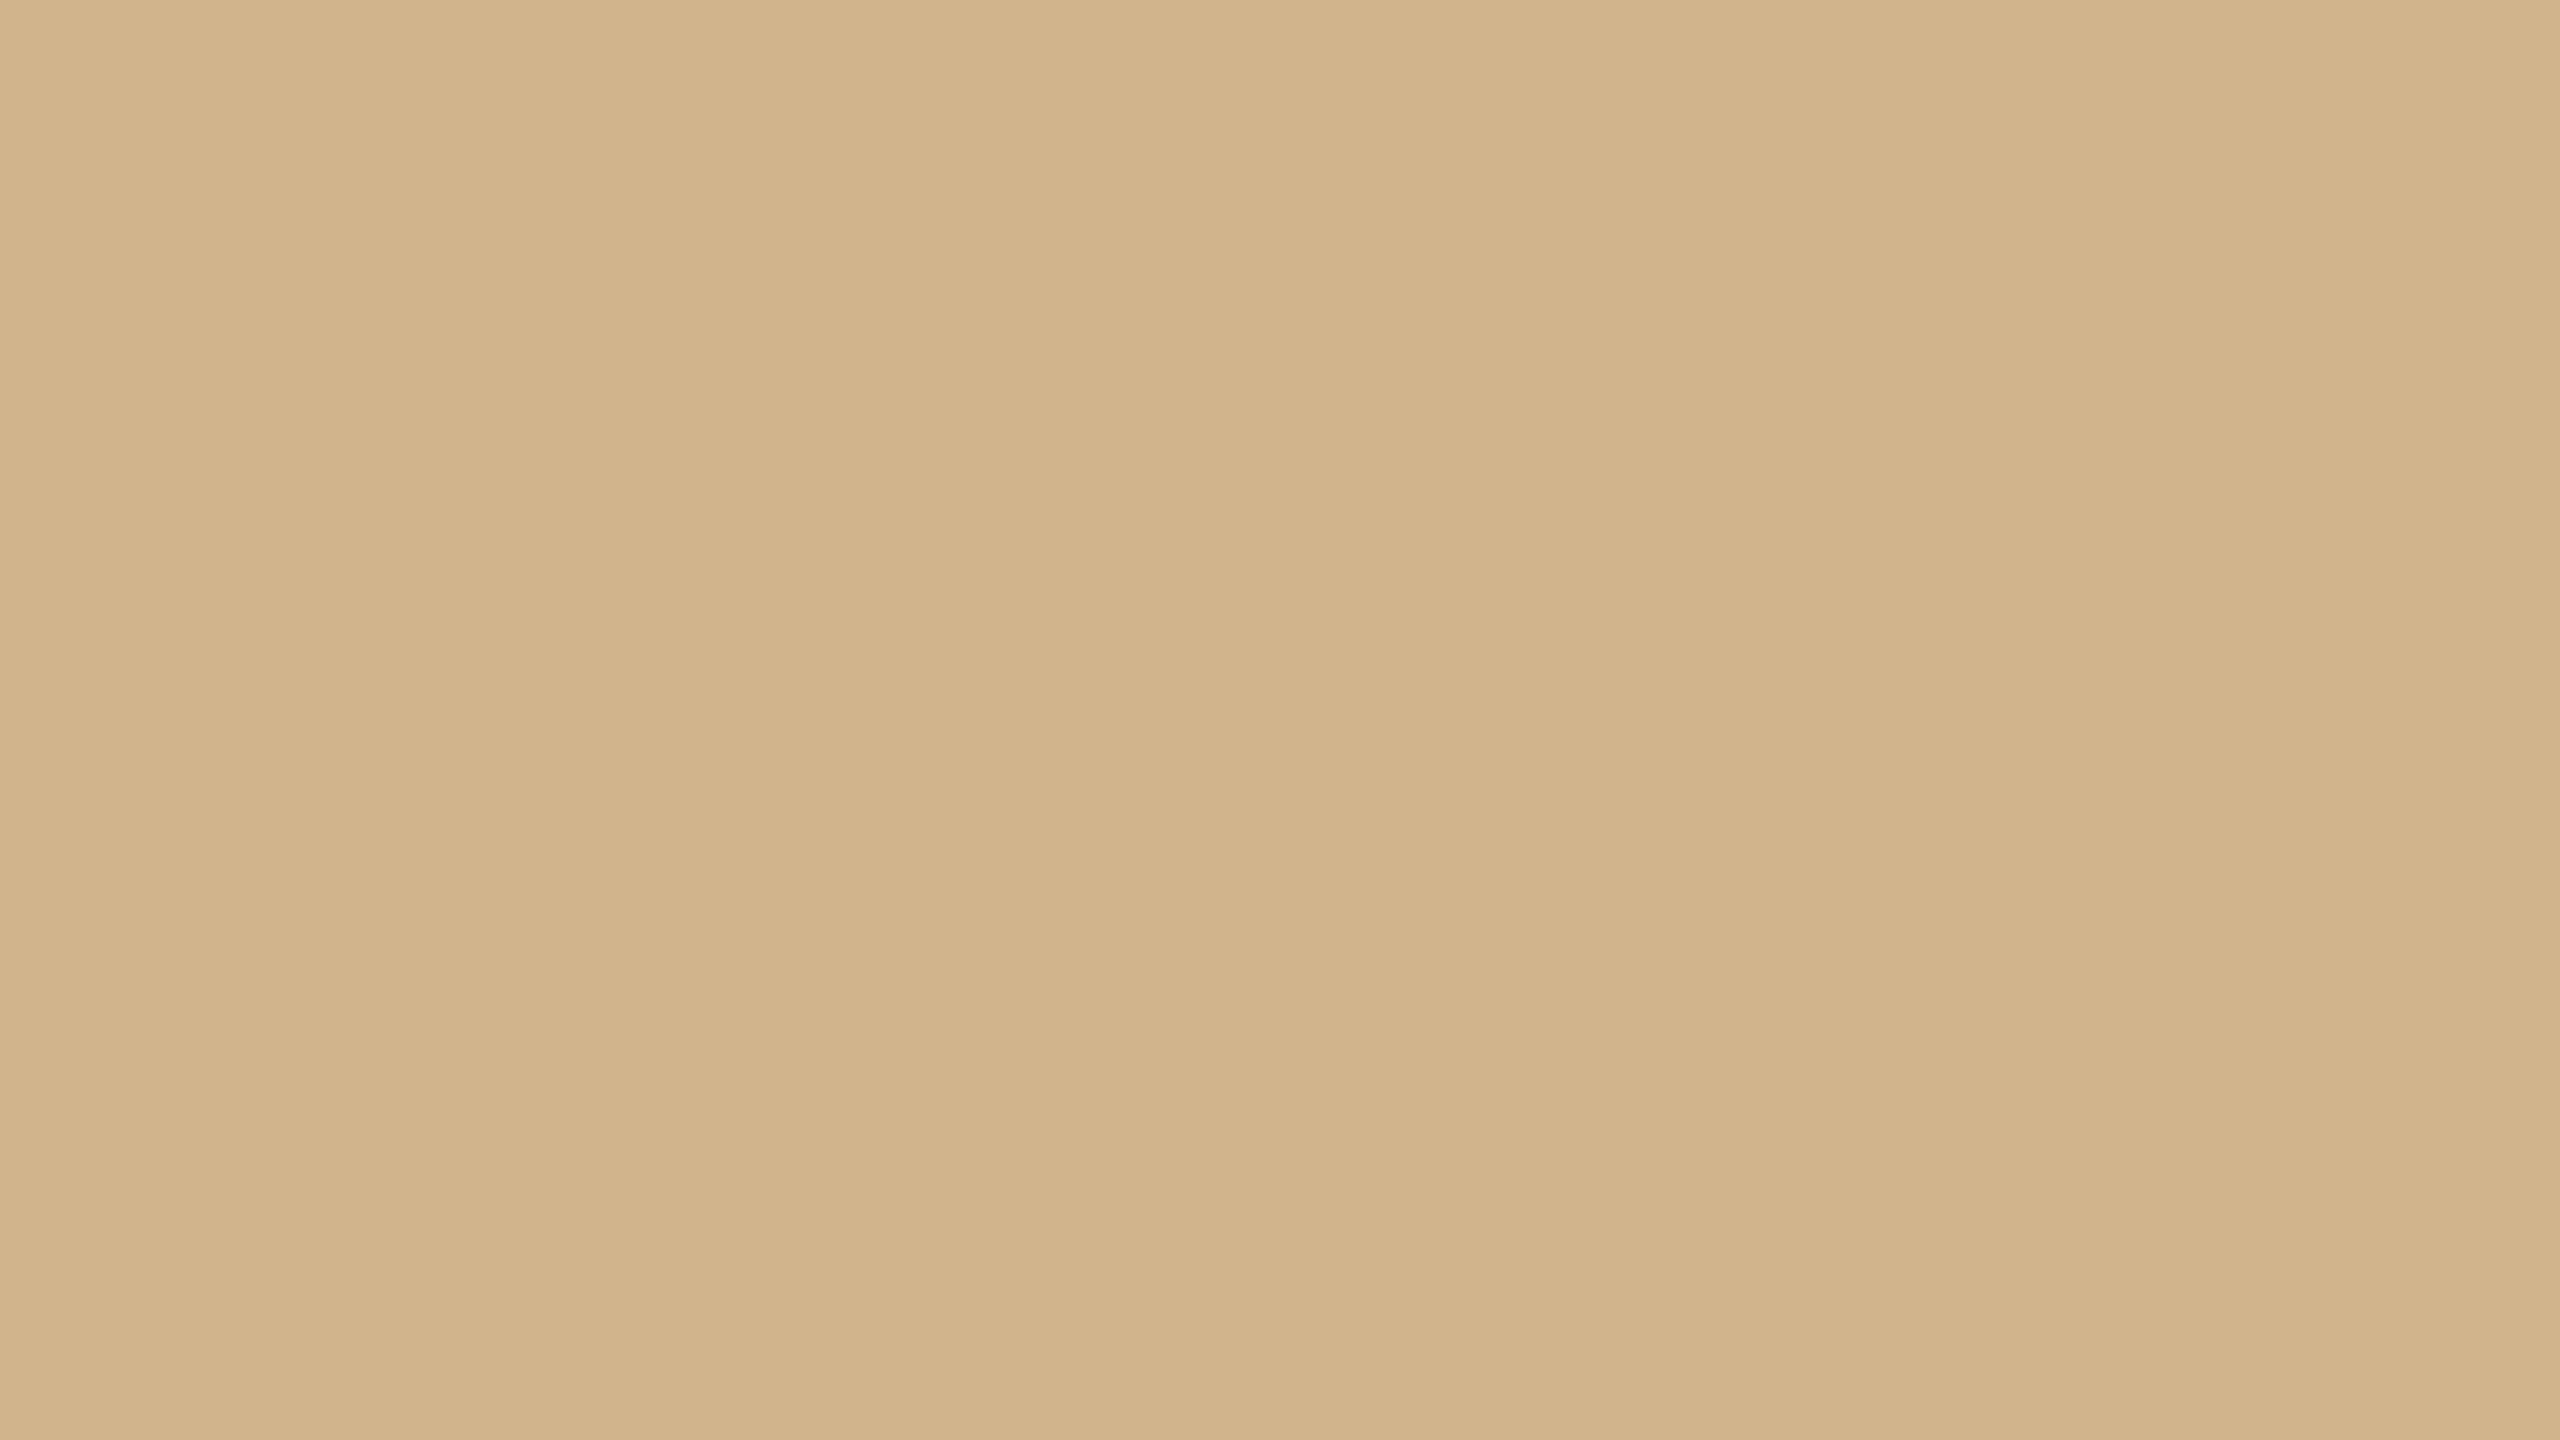 2560x1440 Tan Solid Color Background